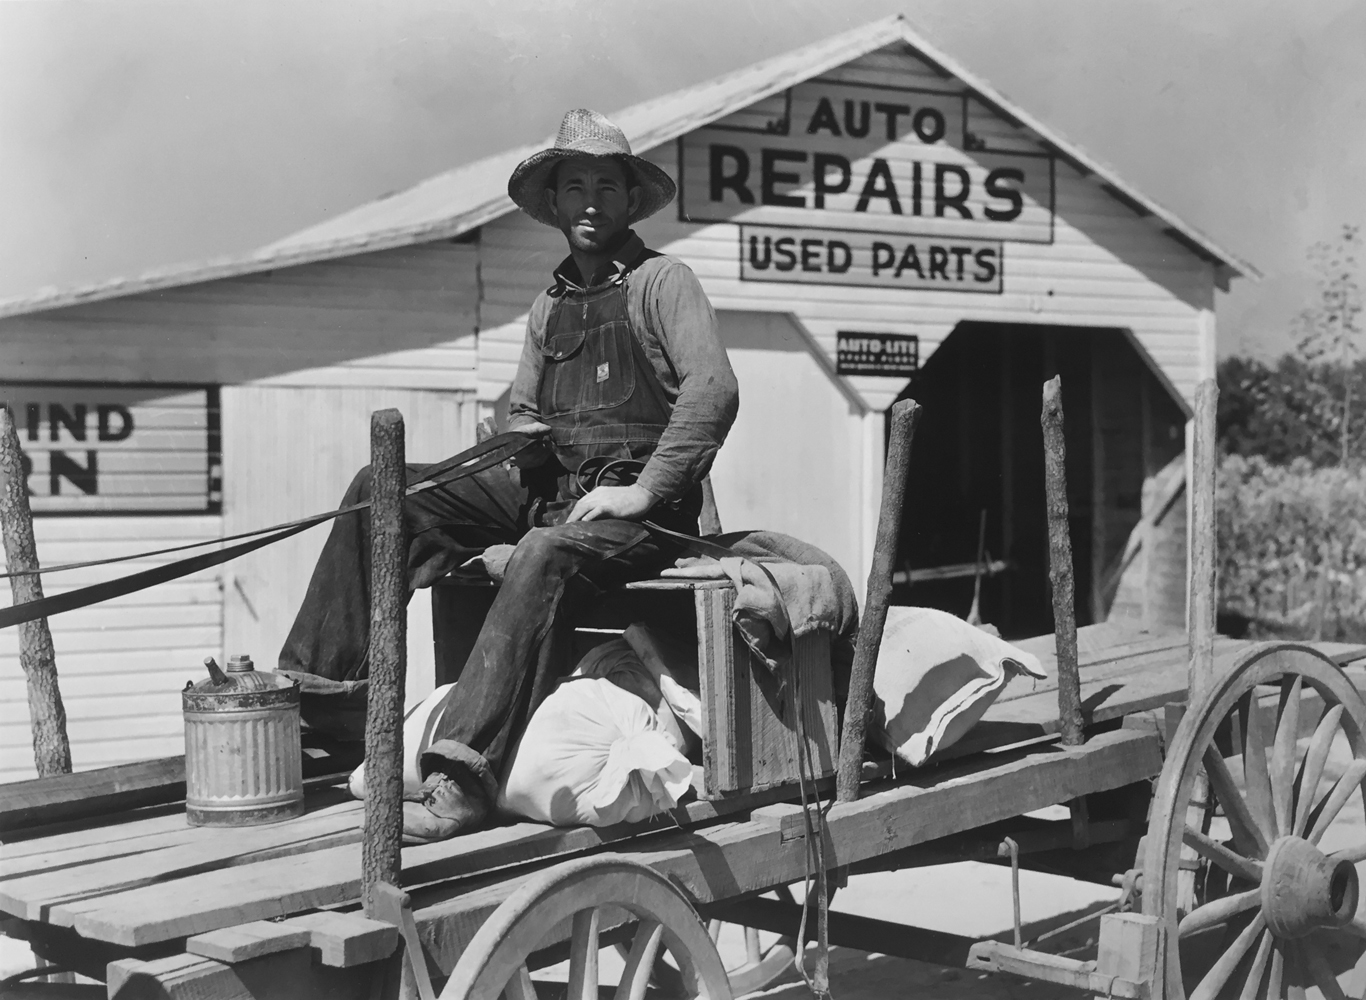 Marion Post Wolcott, Auto Repairs, Used Parts, Man in Wagon with Supplies, gelatin silver print, 11 x 14 inches, price on request